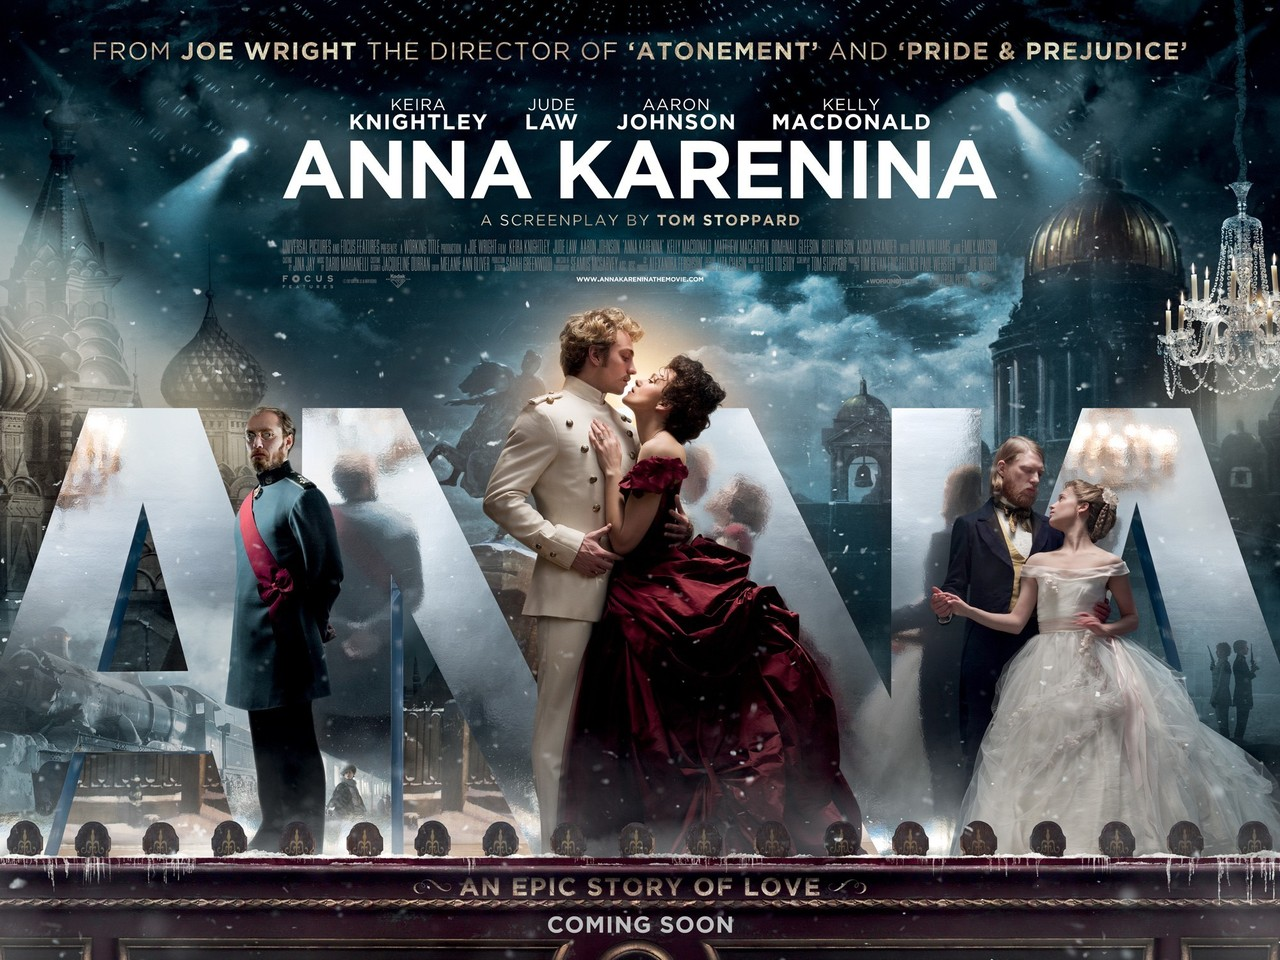 anna karenina Anna karenina is a novel written by leo tolstoy the oblonsky family of moscow is torn apart by adultery dolly oblonskaya has caught her husband, stiva, having an affair with their children's former governess, and threatens to leave him.